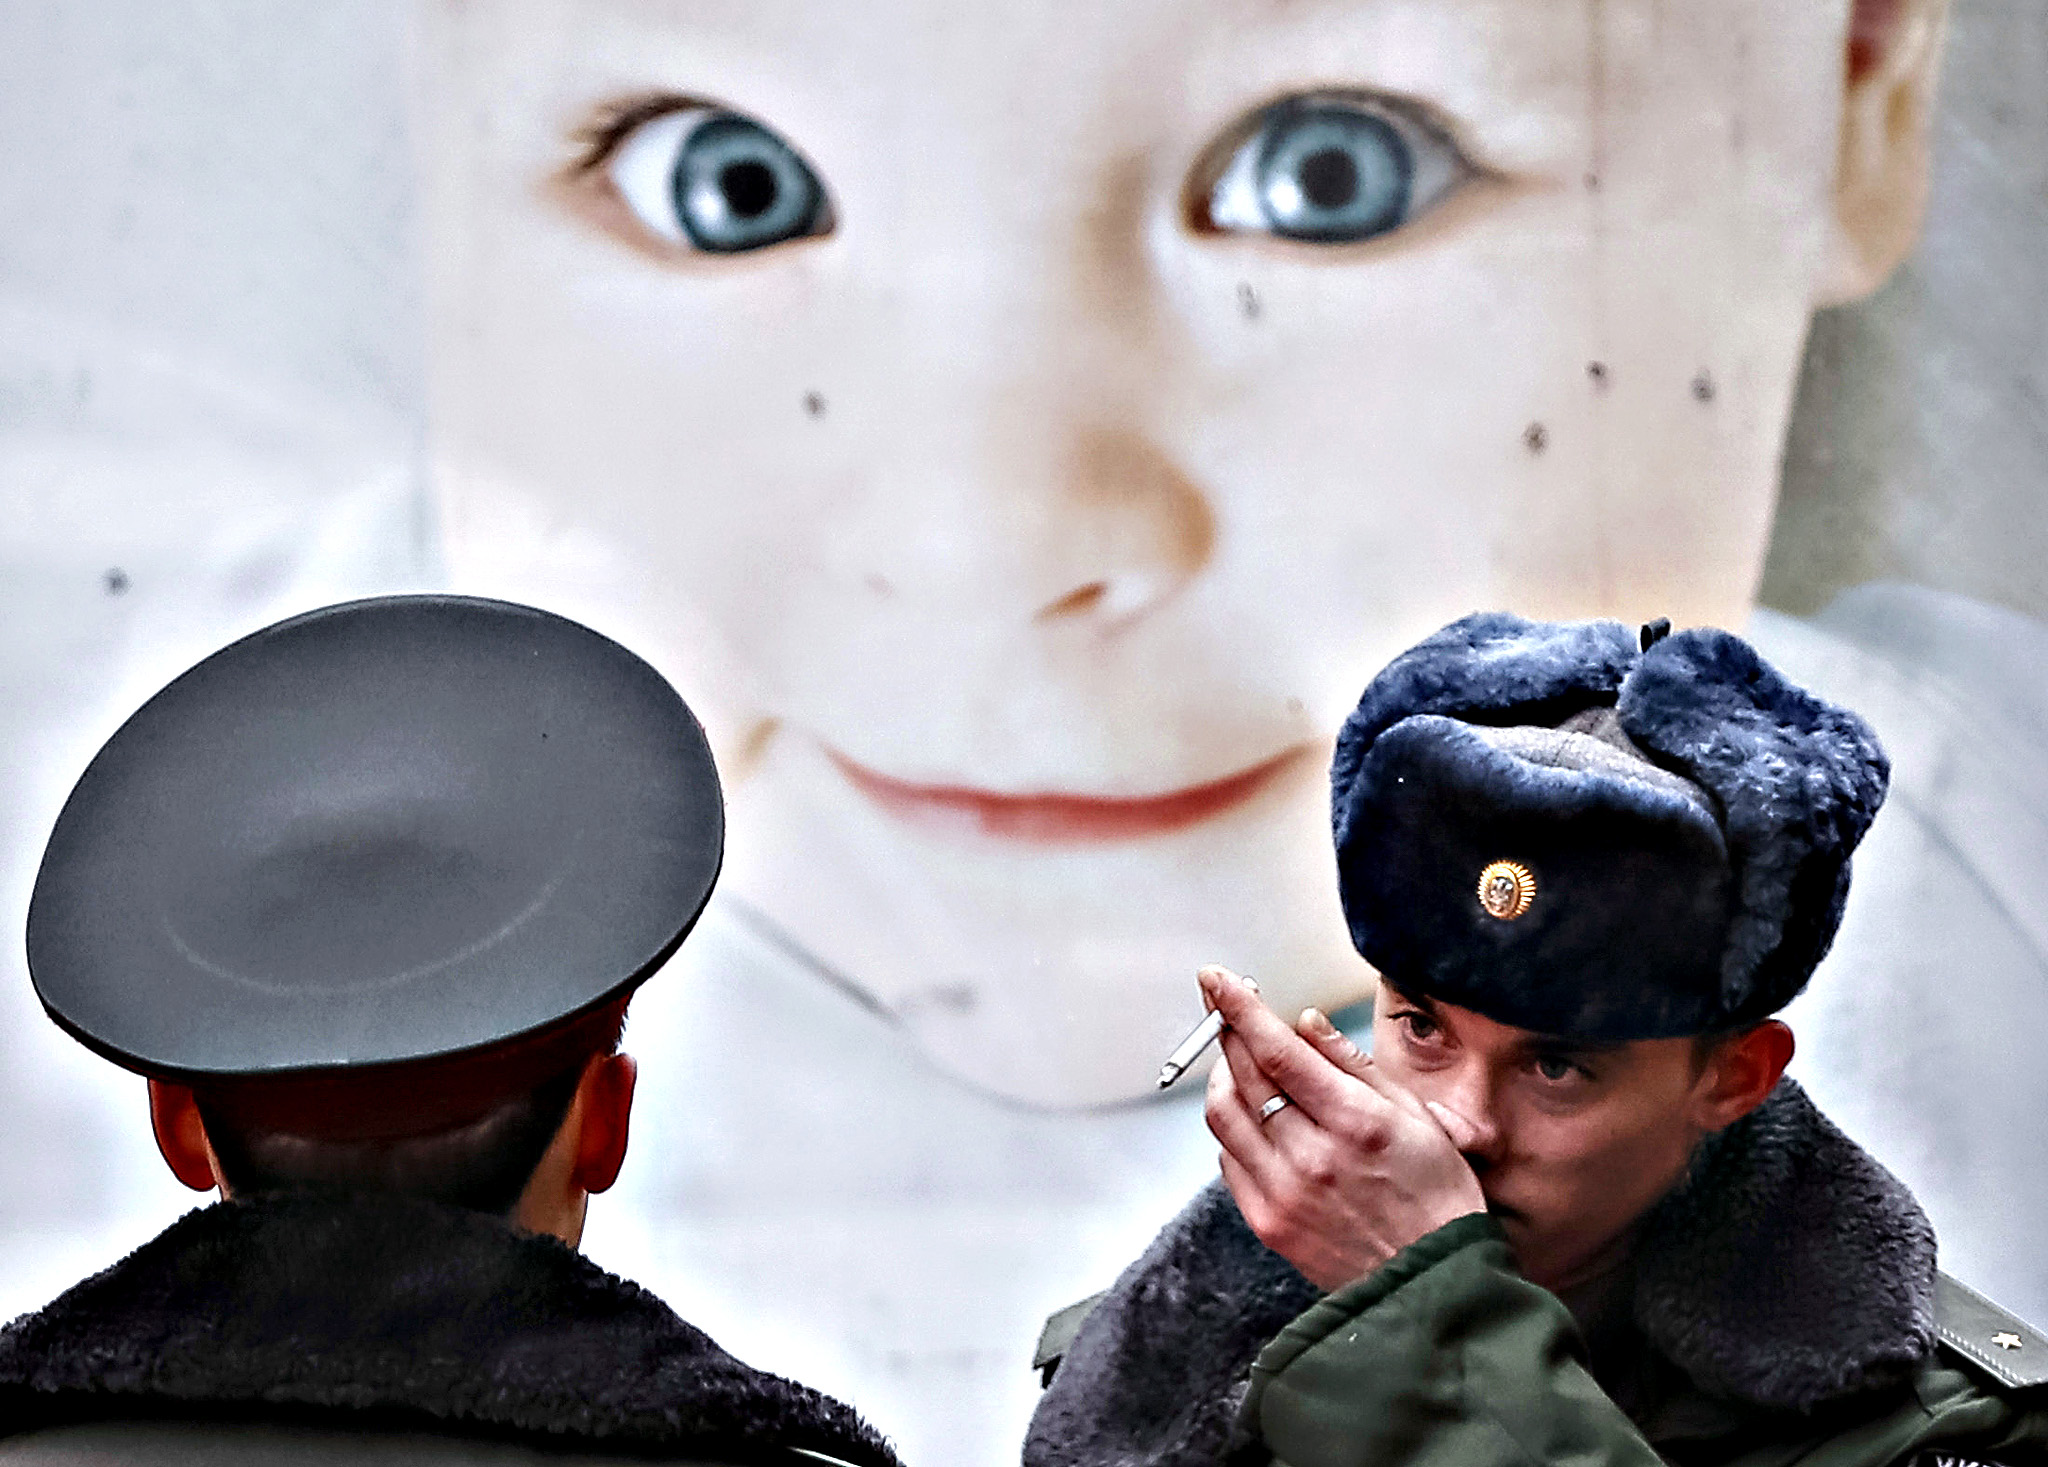 Ukrainian servicemen are seen near a billboard with social advertising in central Kiev, January 15, 2015. Ukraine's parliament voted on Thursday to refresh its front-line forces and resume partial conscription after a top security official warned that Russian forces backing separatist rebels had sharply increased military activity in the east.